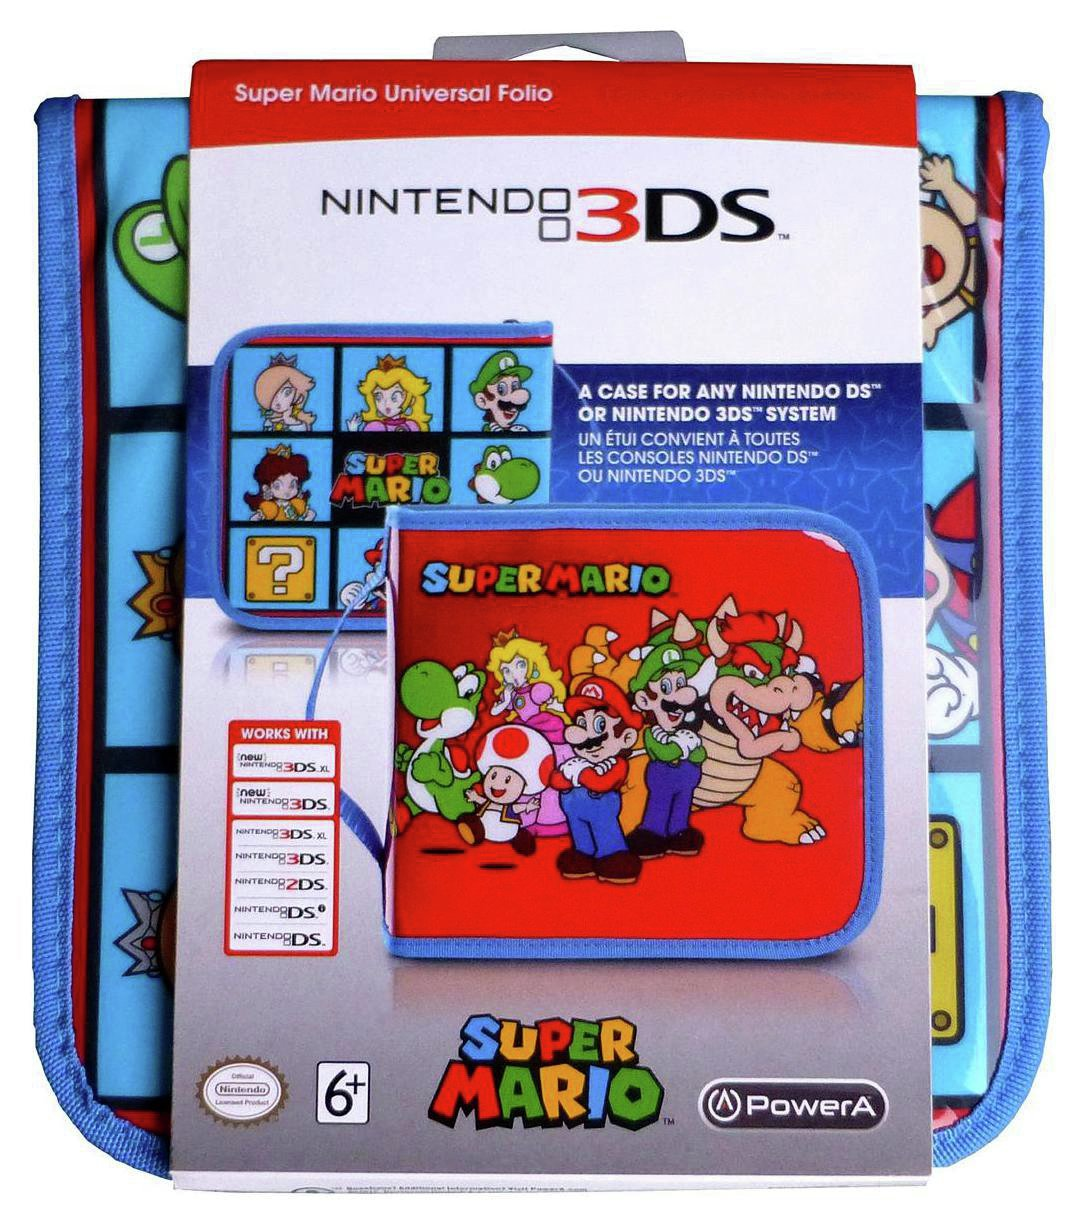 universal-super-mario-2ds3ds-xl-folio-case